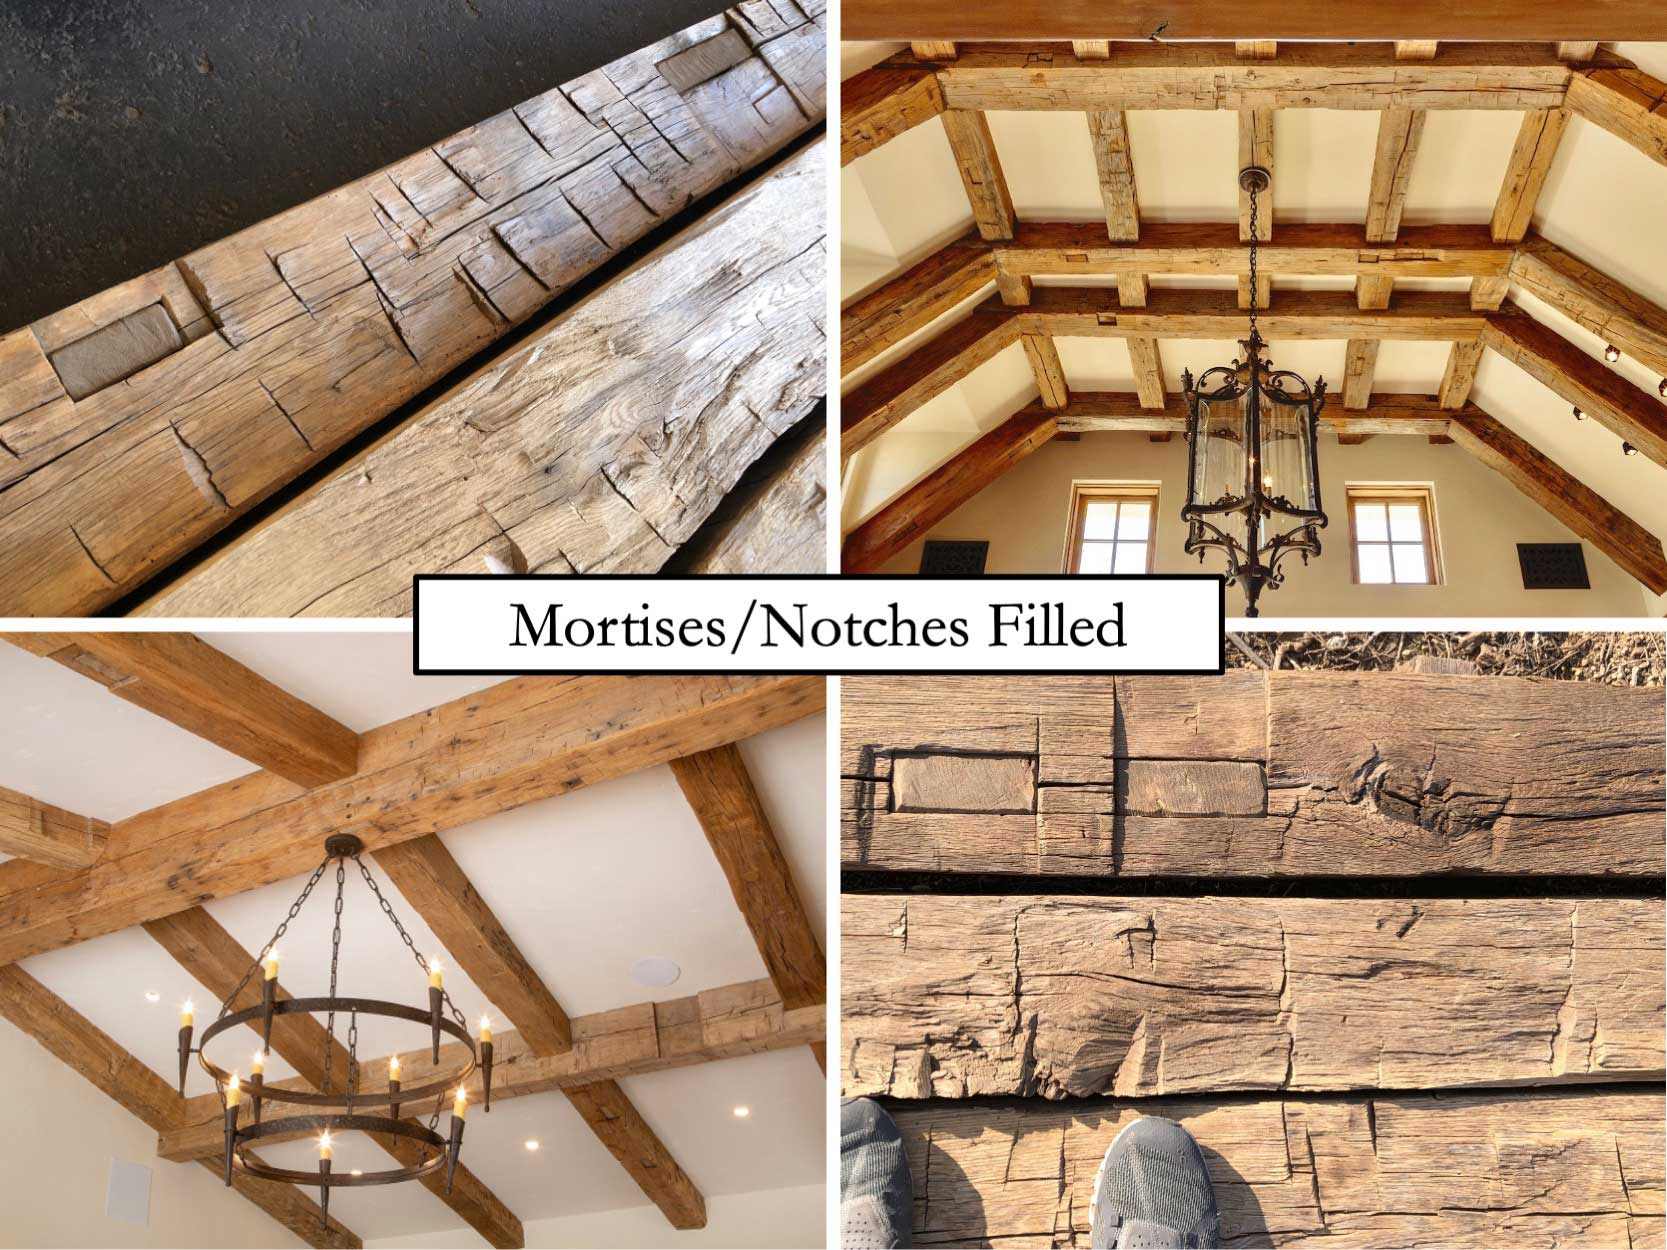 hardwood barn timbers with notches filled